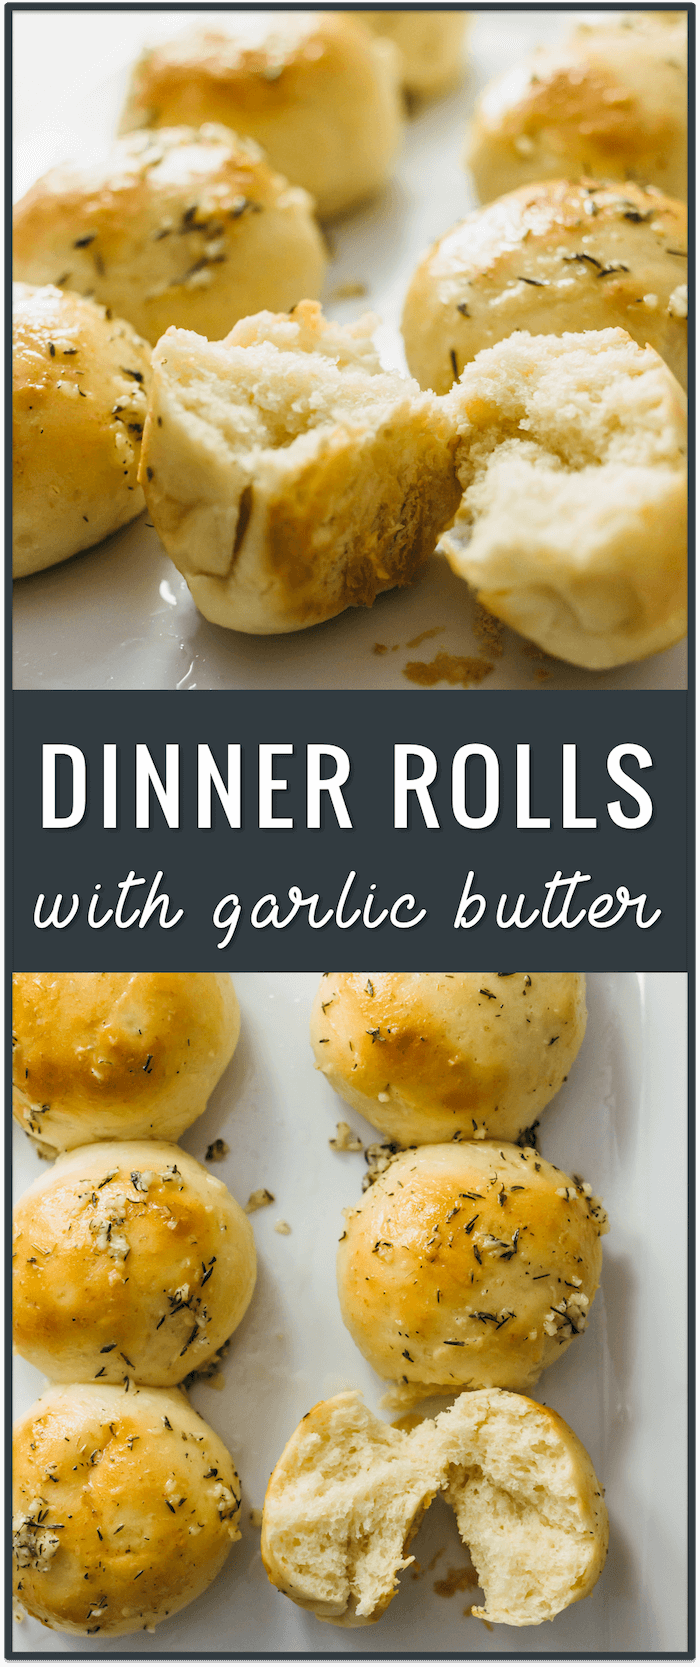 Small batch dinner rolls with garlic butter, homemade dinner rolls, easy dinner rolls, quick dinner rolls, sweet dinner rolls, best dinner rolls, soft dinner rolls, fluffy dinner rolls, healthy dinner rolls, small loaf bread recipe, dinner rolls for two, one hour, make ahead, bread machine